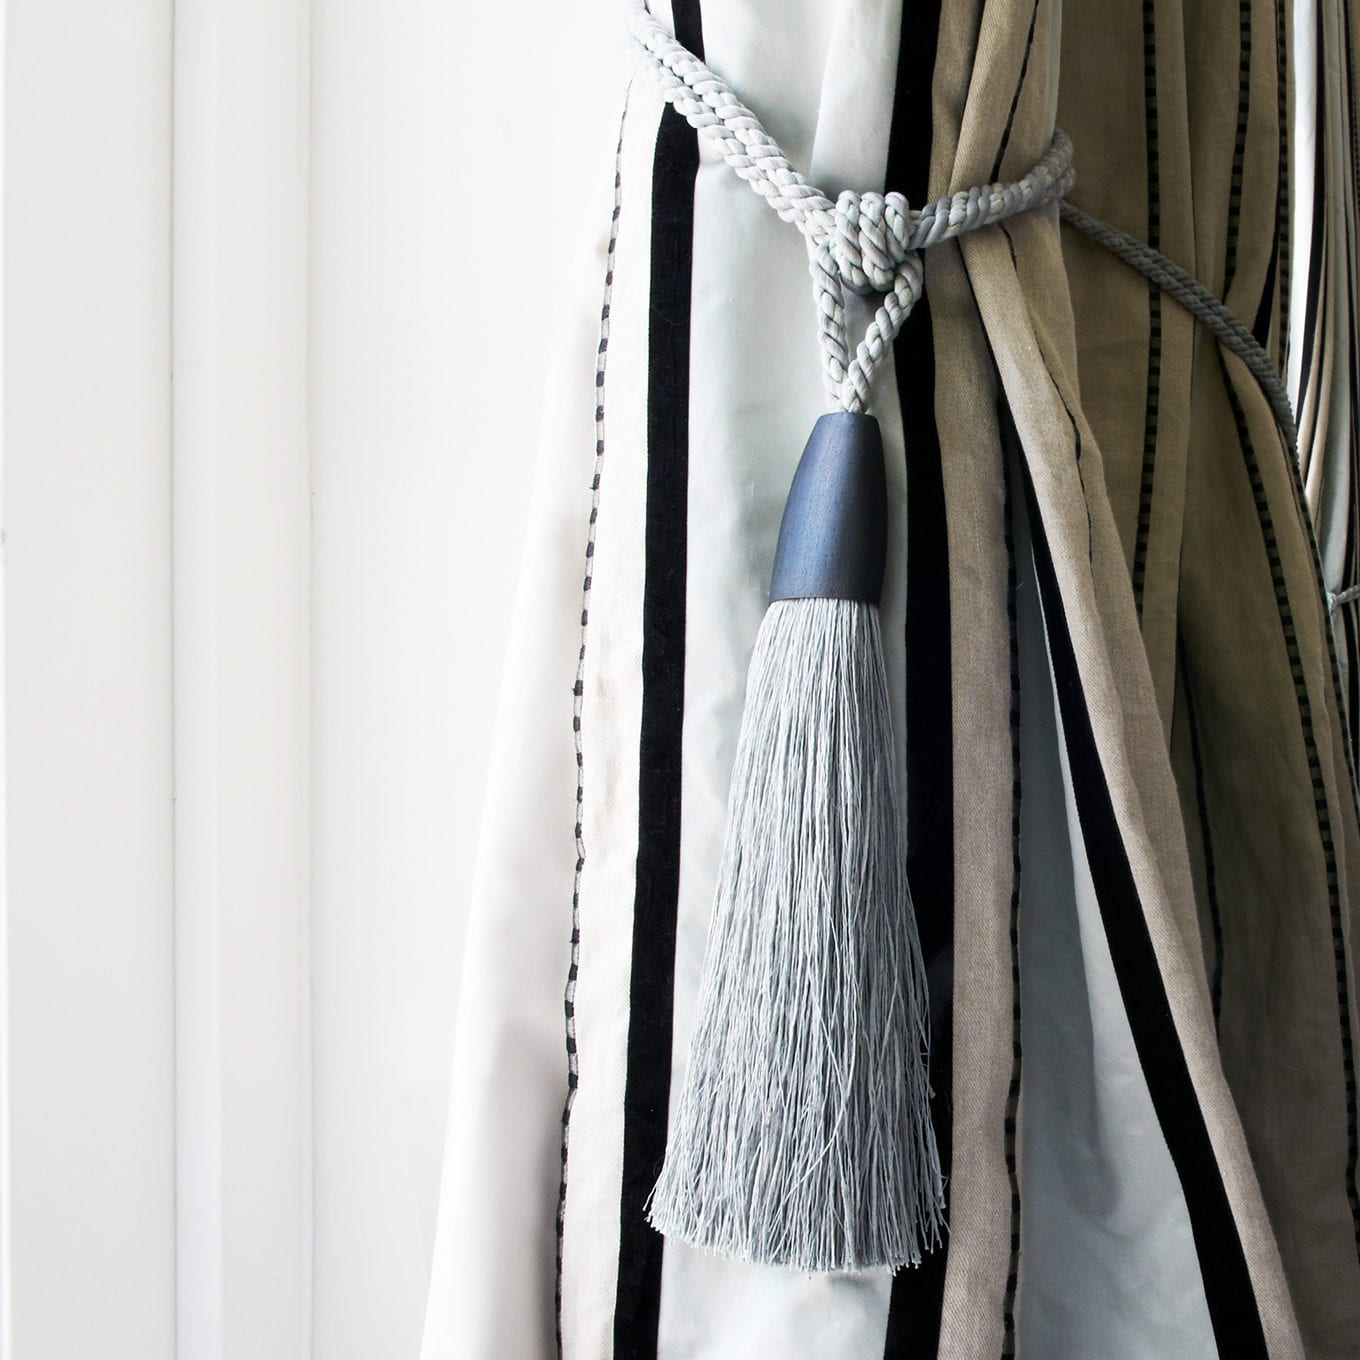 Striped curtains made by Thomas Coombes Interior Design with tie backs.